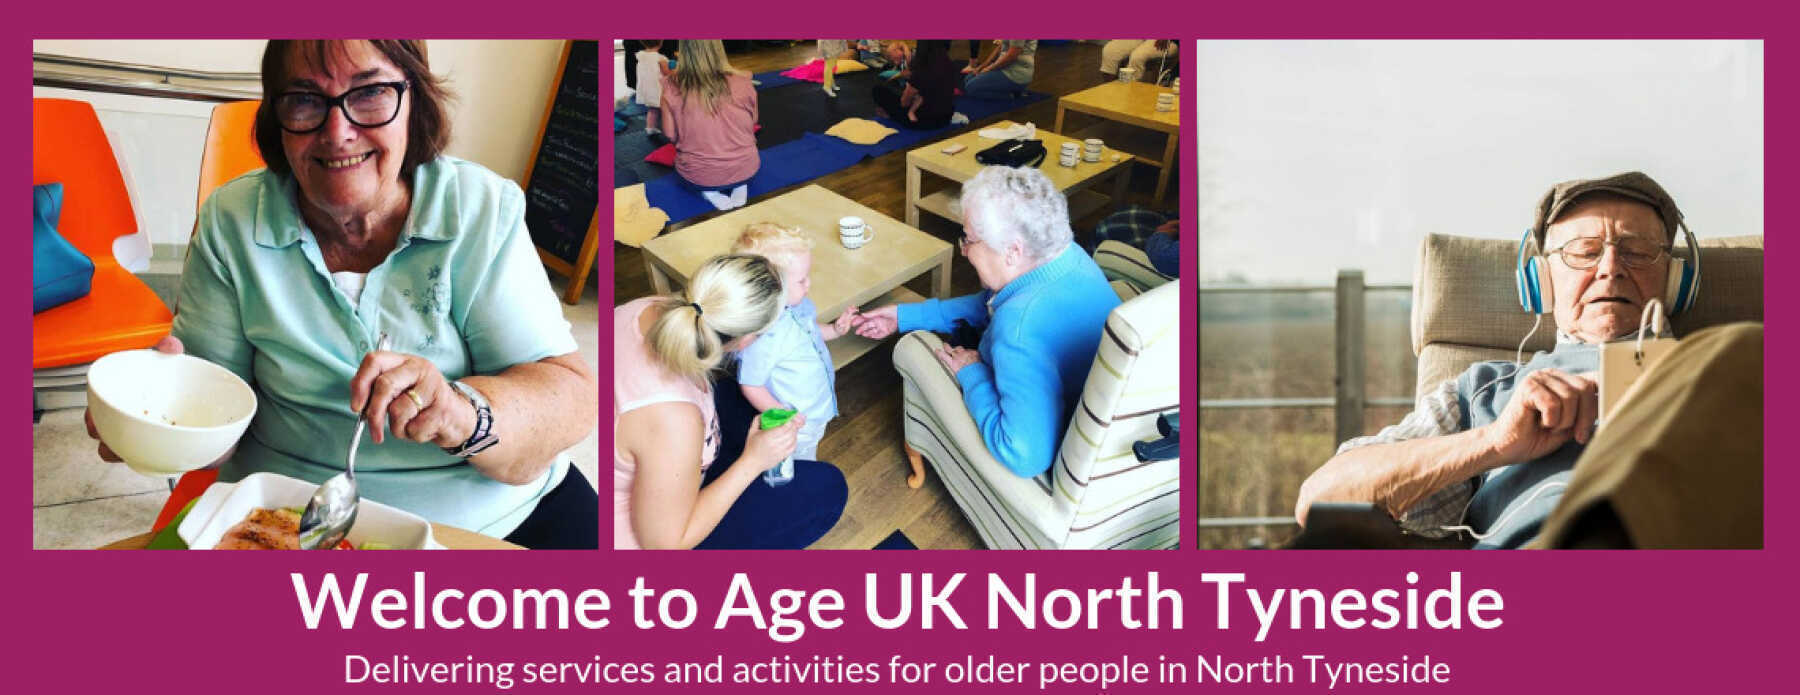 Featured Image for Age UK North Tyneside